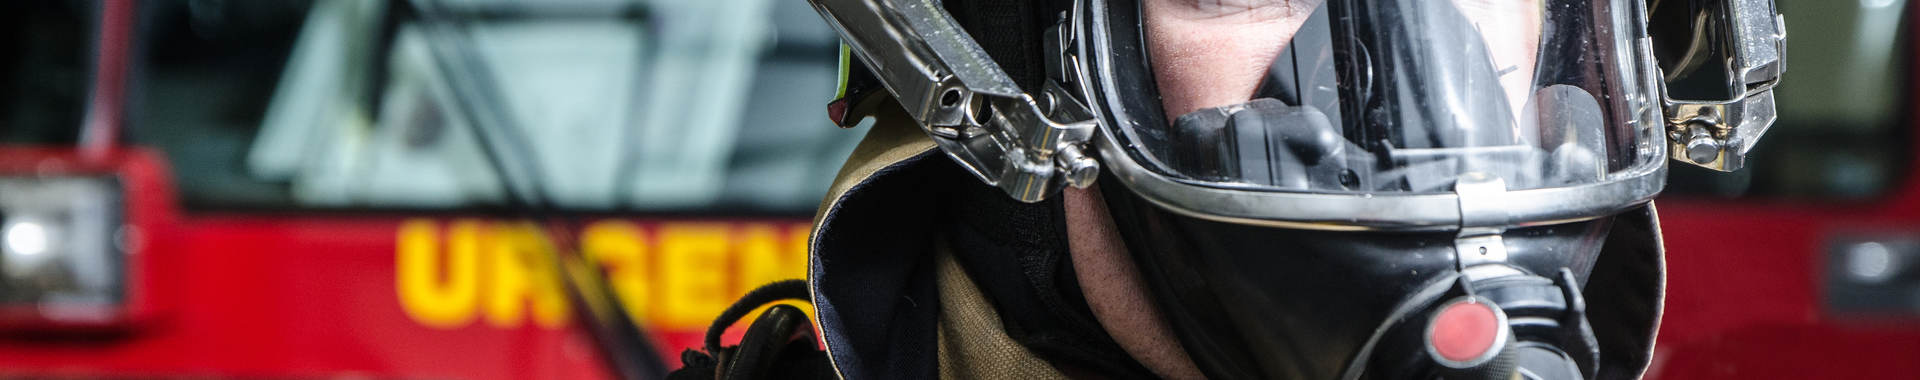 Fireman with breathing mask close up